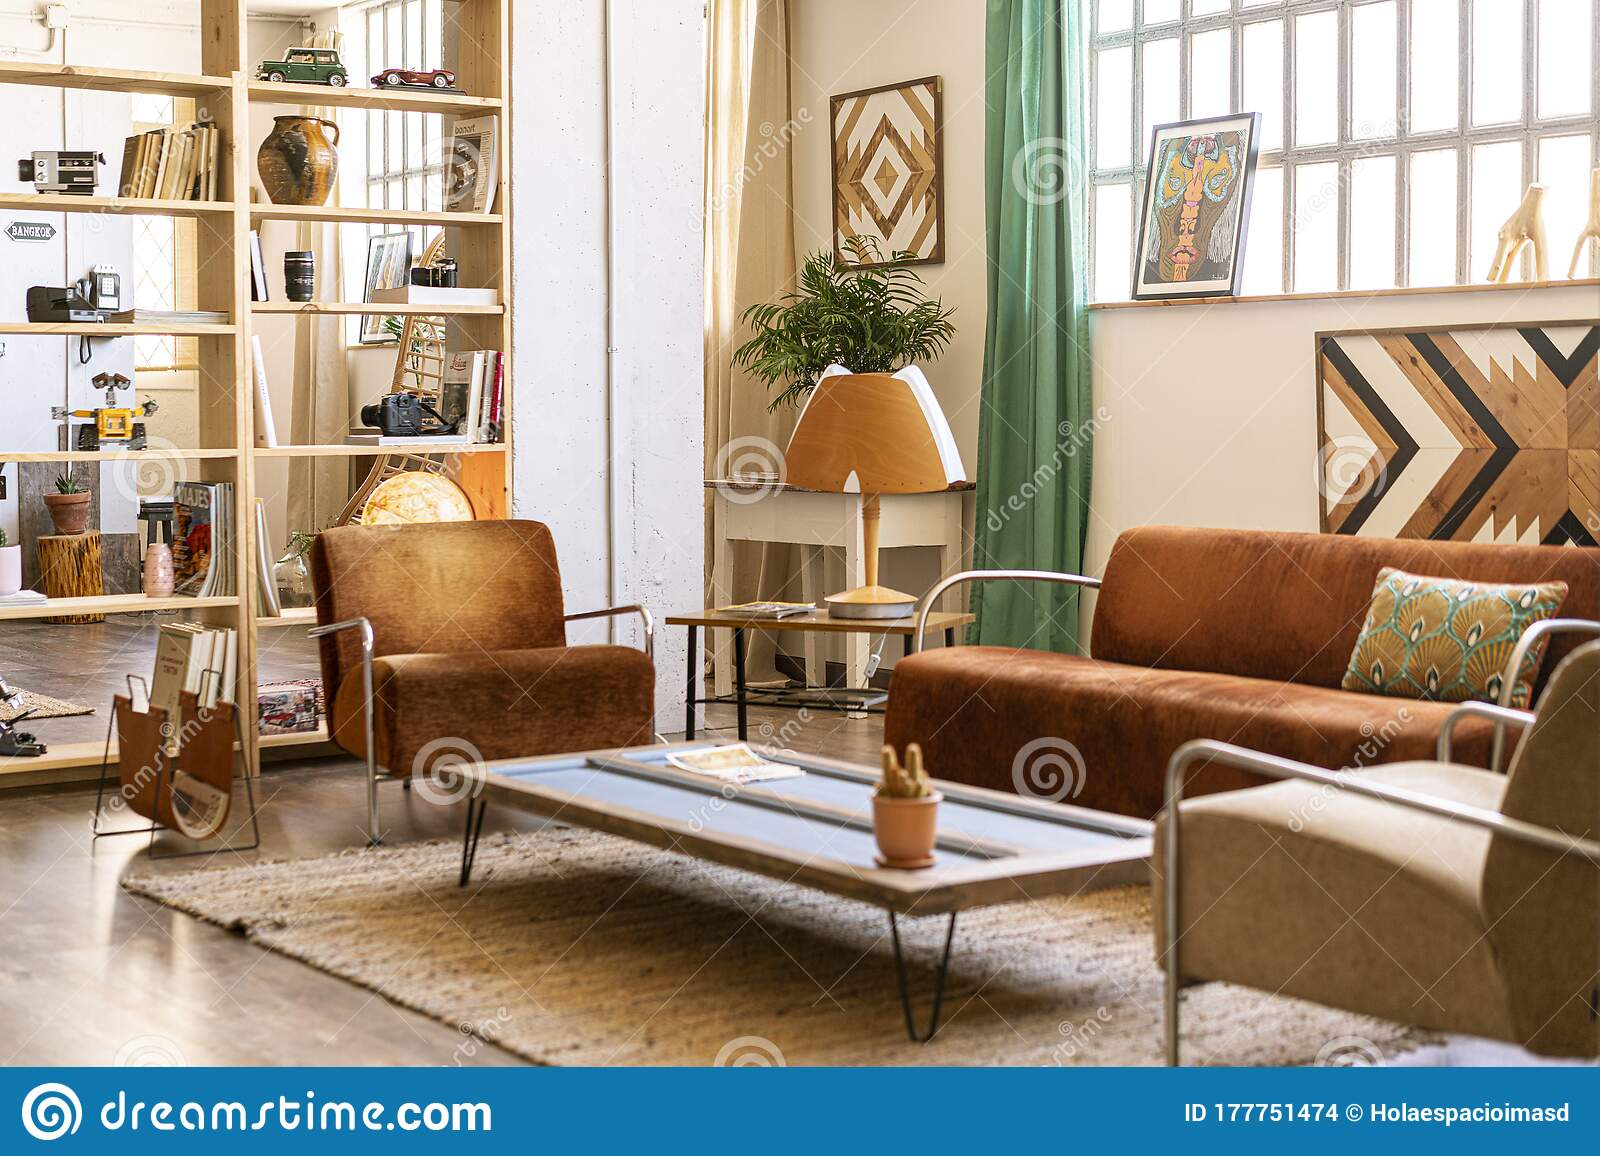 Interior Home Decoration Living Room With Relax Zone With Brown Sofas And Armchairs Stock Photo Image Of Loft Industrial 177751474